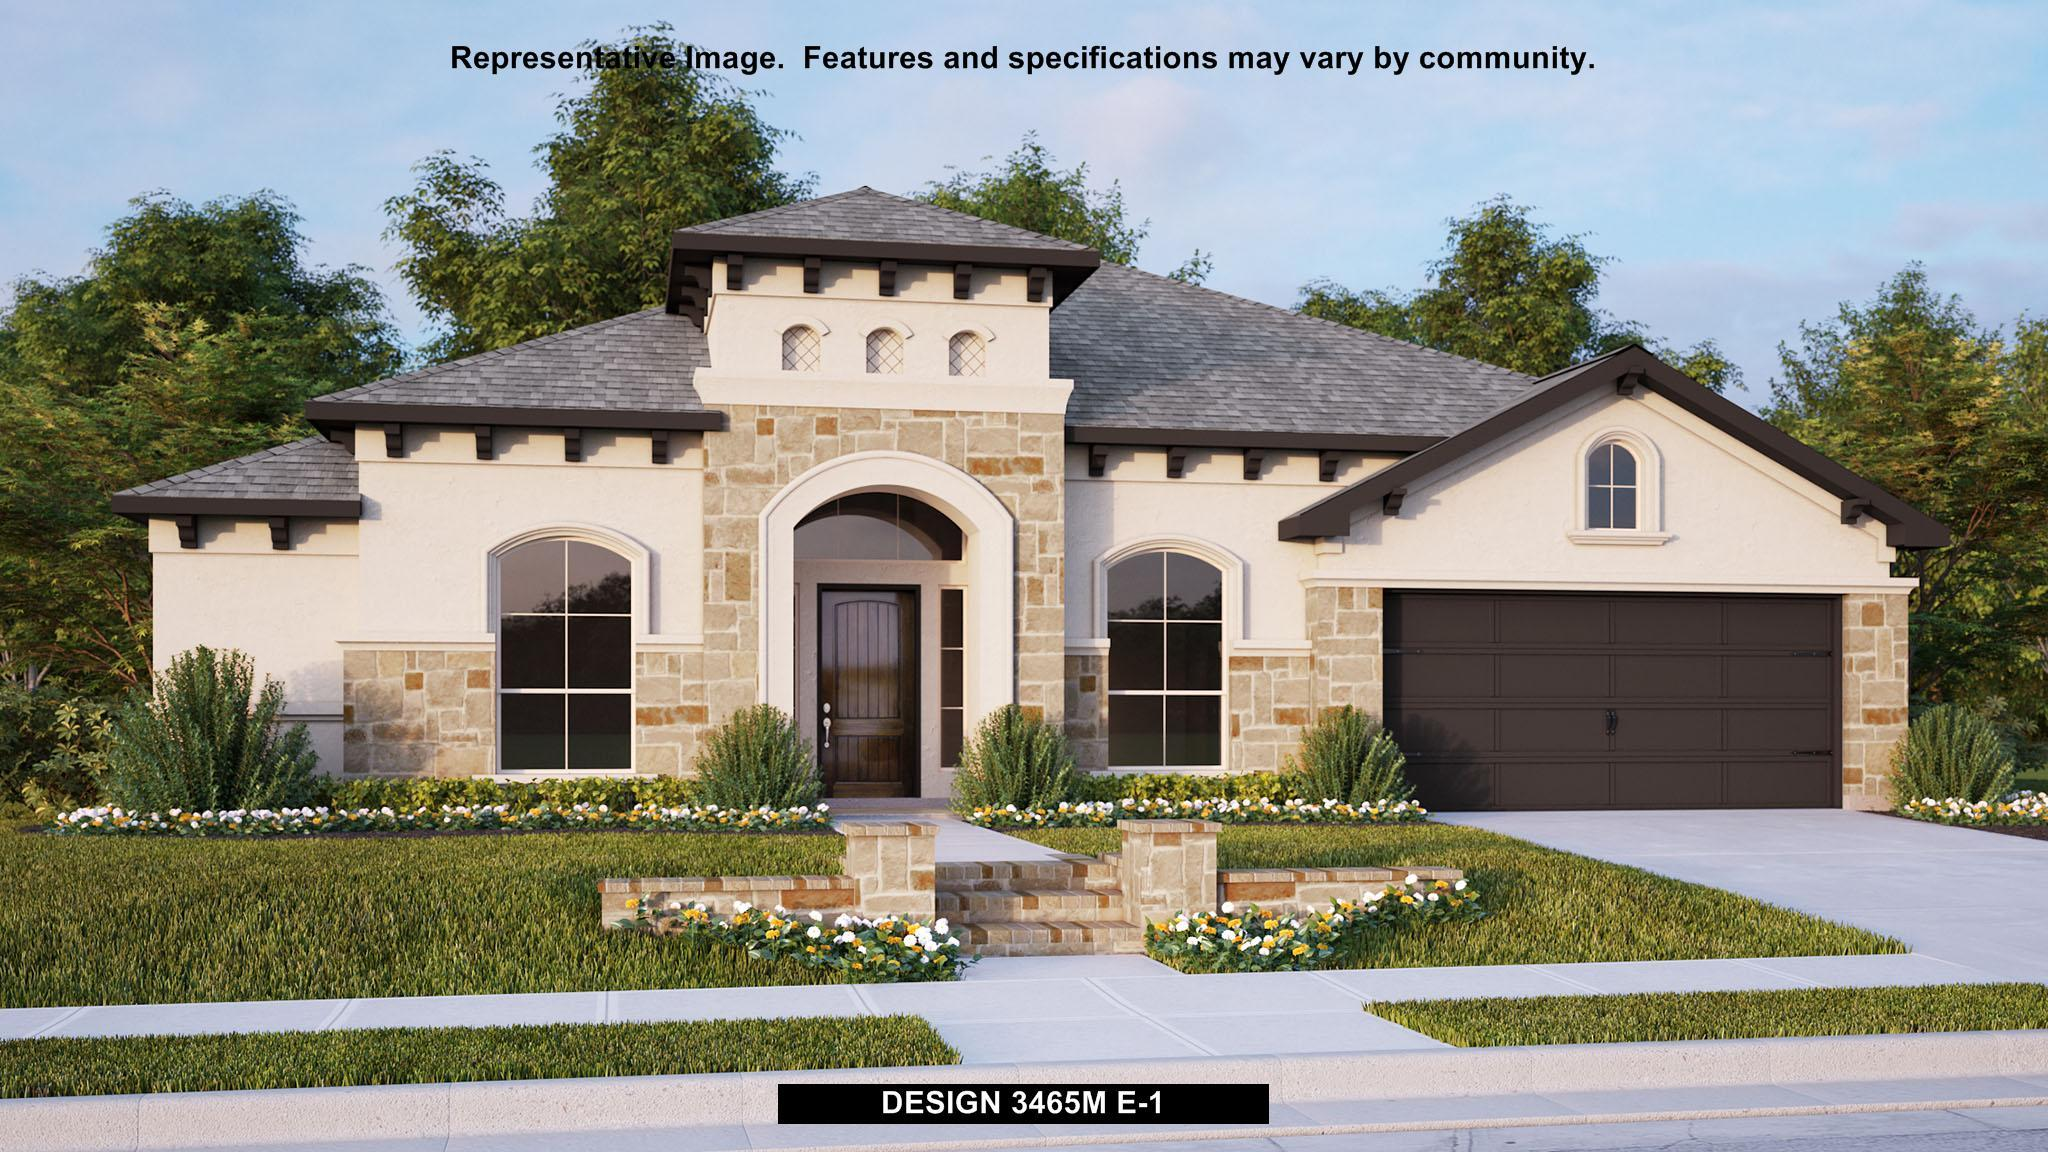 Perry Homes New Home Plans in Friendswood TX | NewHomeSource on bungalow homes maryland, split level homes maryland, homes in maryland, modern homes maryland, colonial homes maryland, luxury homes maryland, classic homes maryland, solar homes maryland, craftsman homes maryland, apartments maryland, cottage homes maryland, custom homes maryland, stone homes maryland, prefab homes maryland, cape cod homes maryland, tudor homes maryland, log homes maryland, concrete homes maryland, ranch homes maryland, victorian homes maryland,